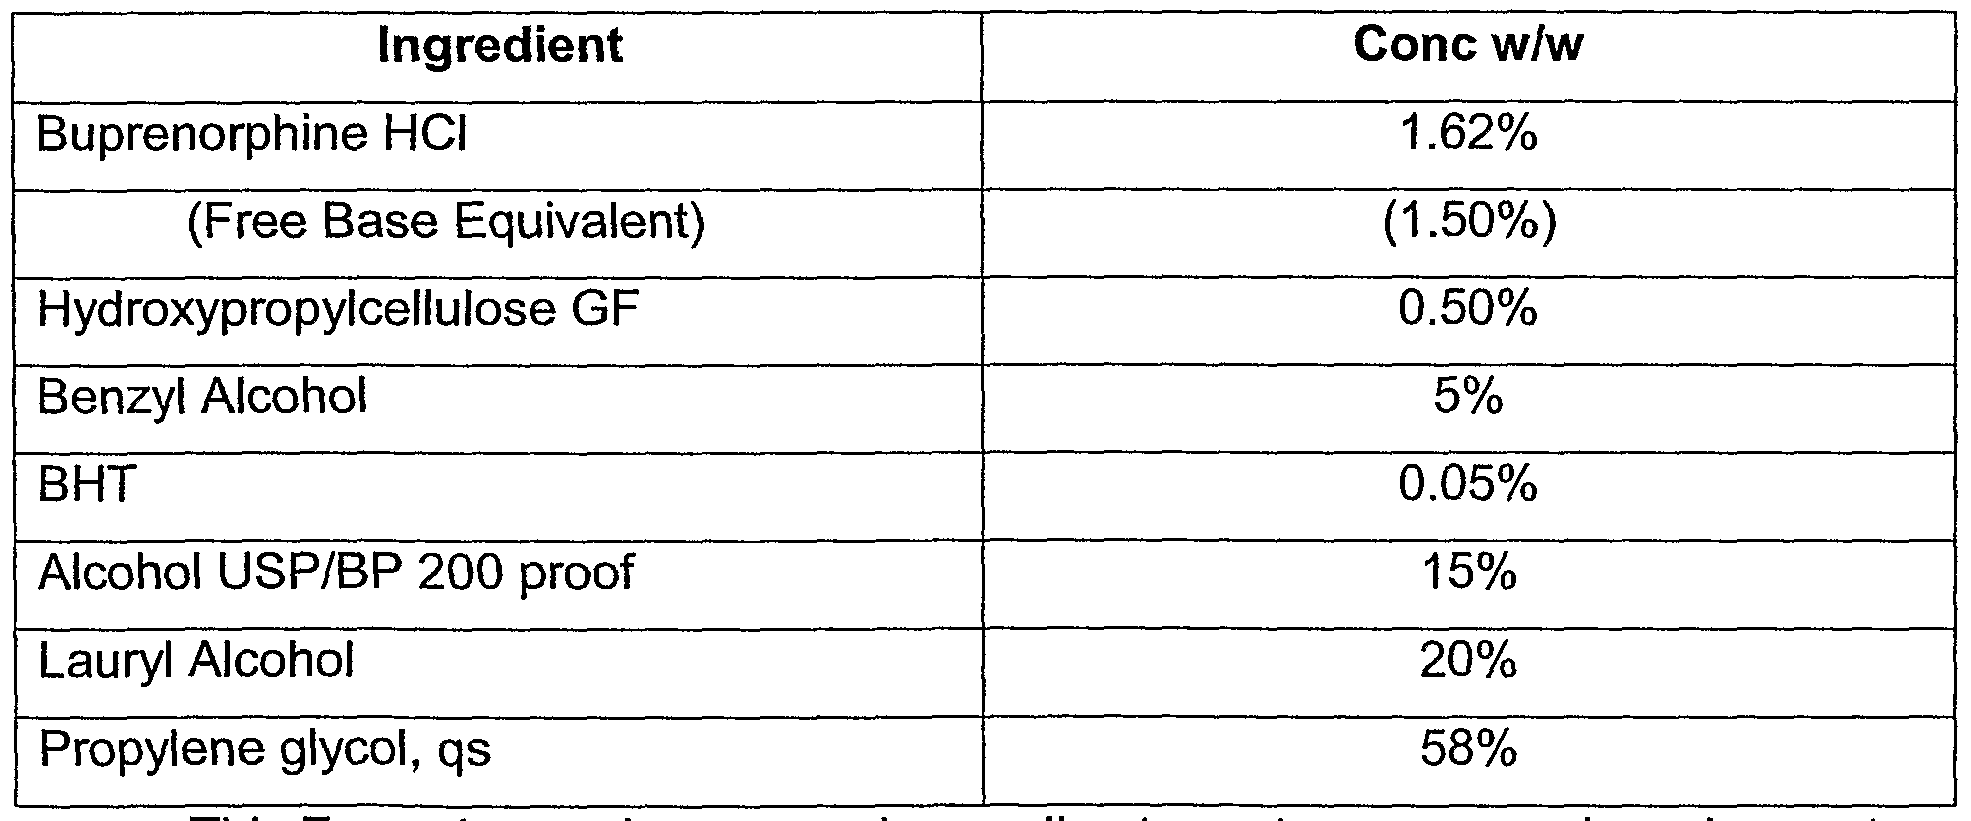 WO2007061739A2 - Pharmaceutical compositions comprising